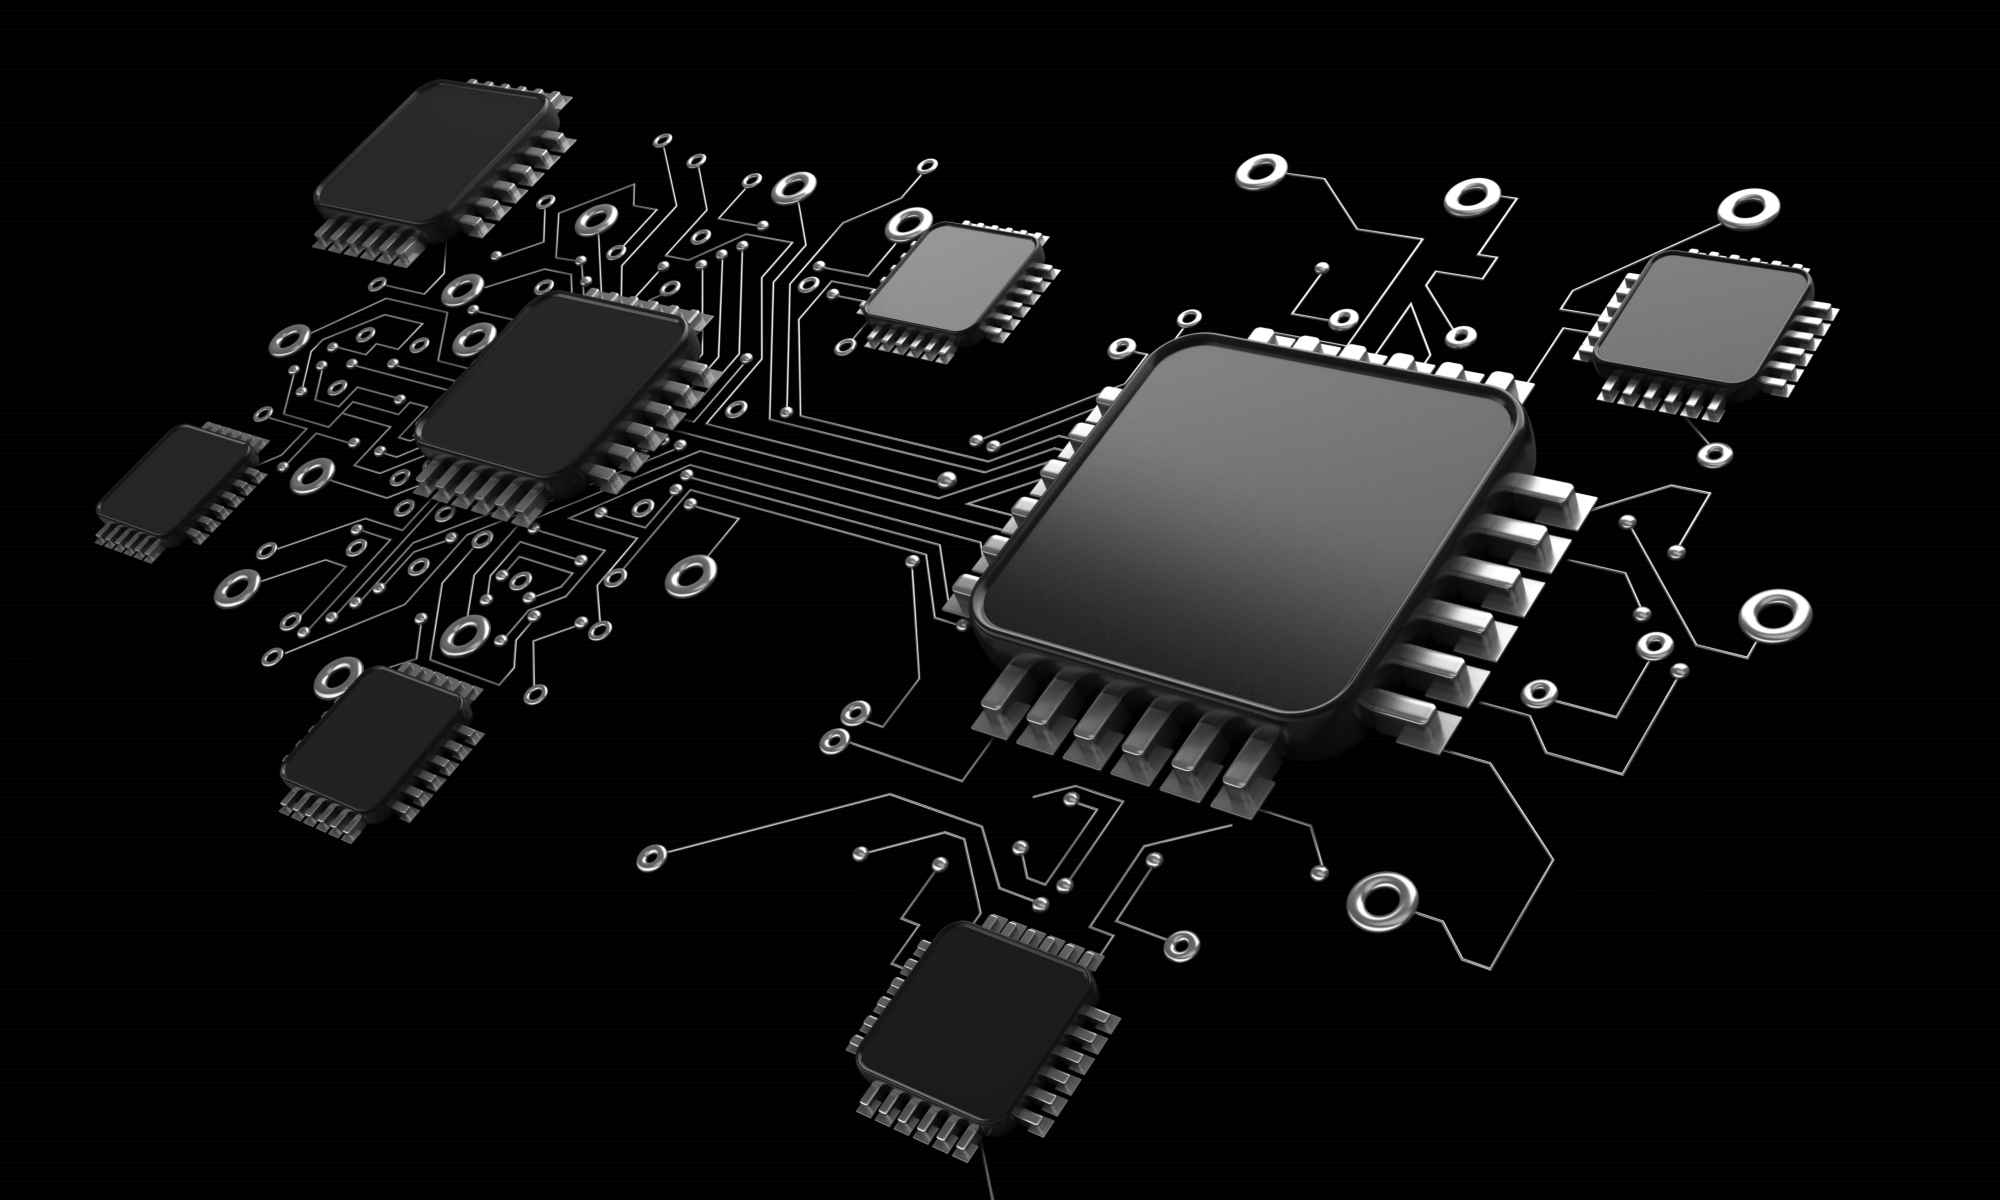 embedded systems & innovations